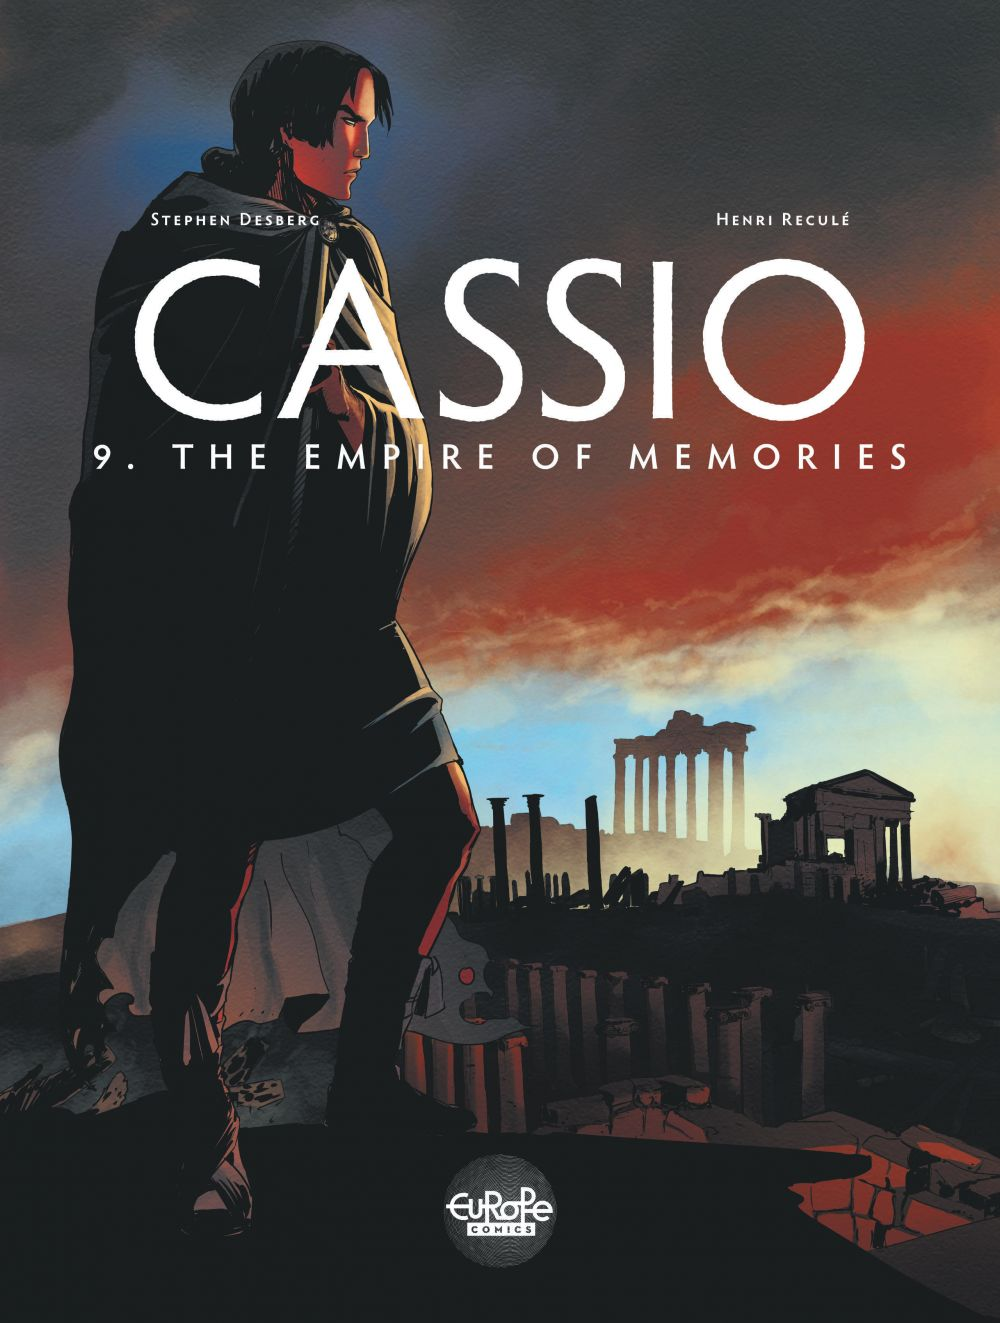 Cassio 9. The Empire of Memories